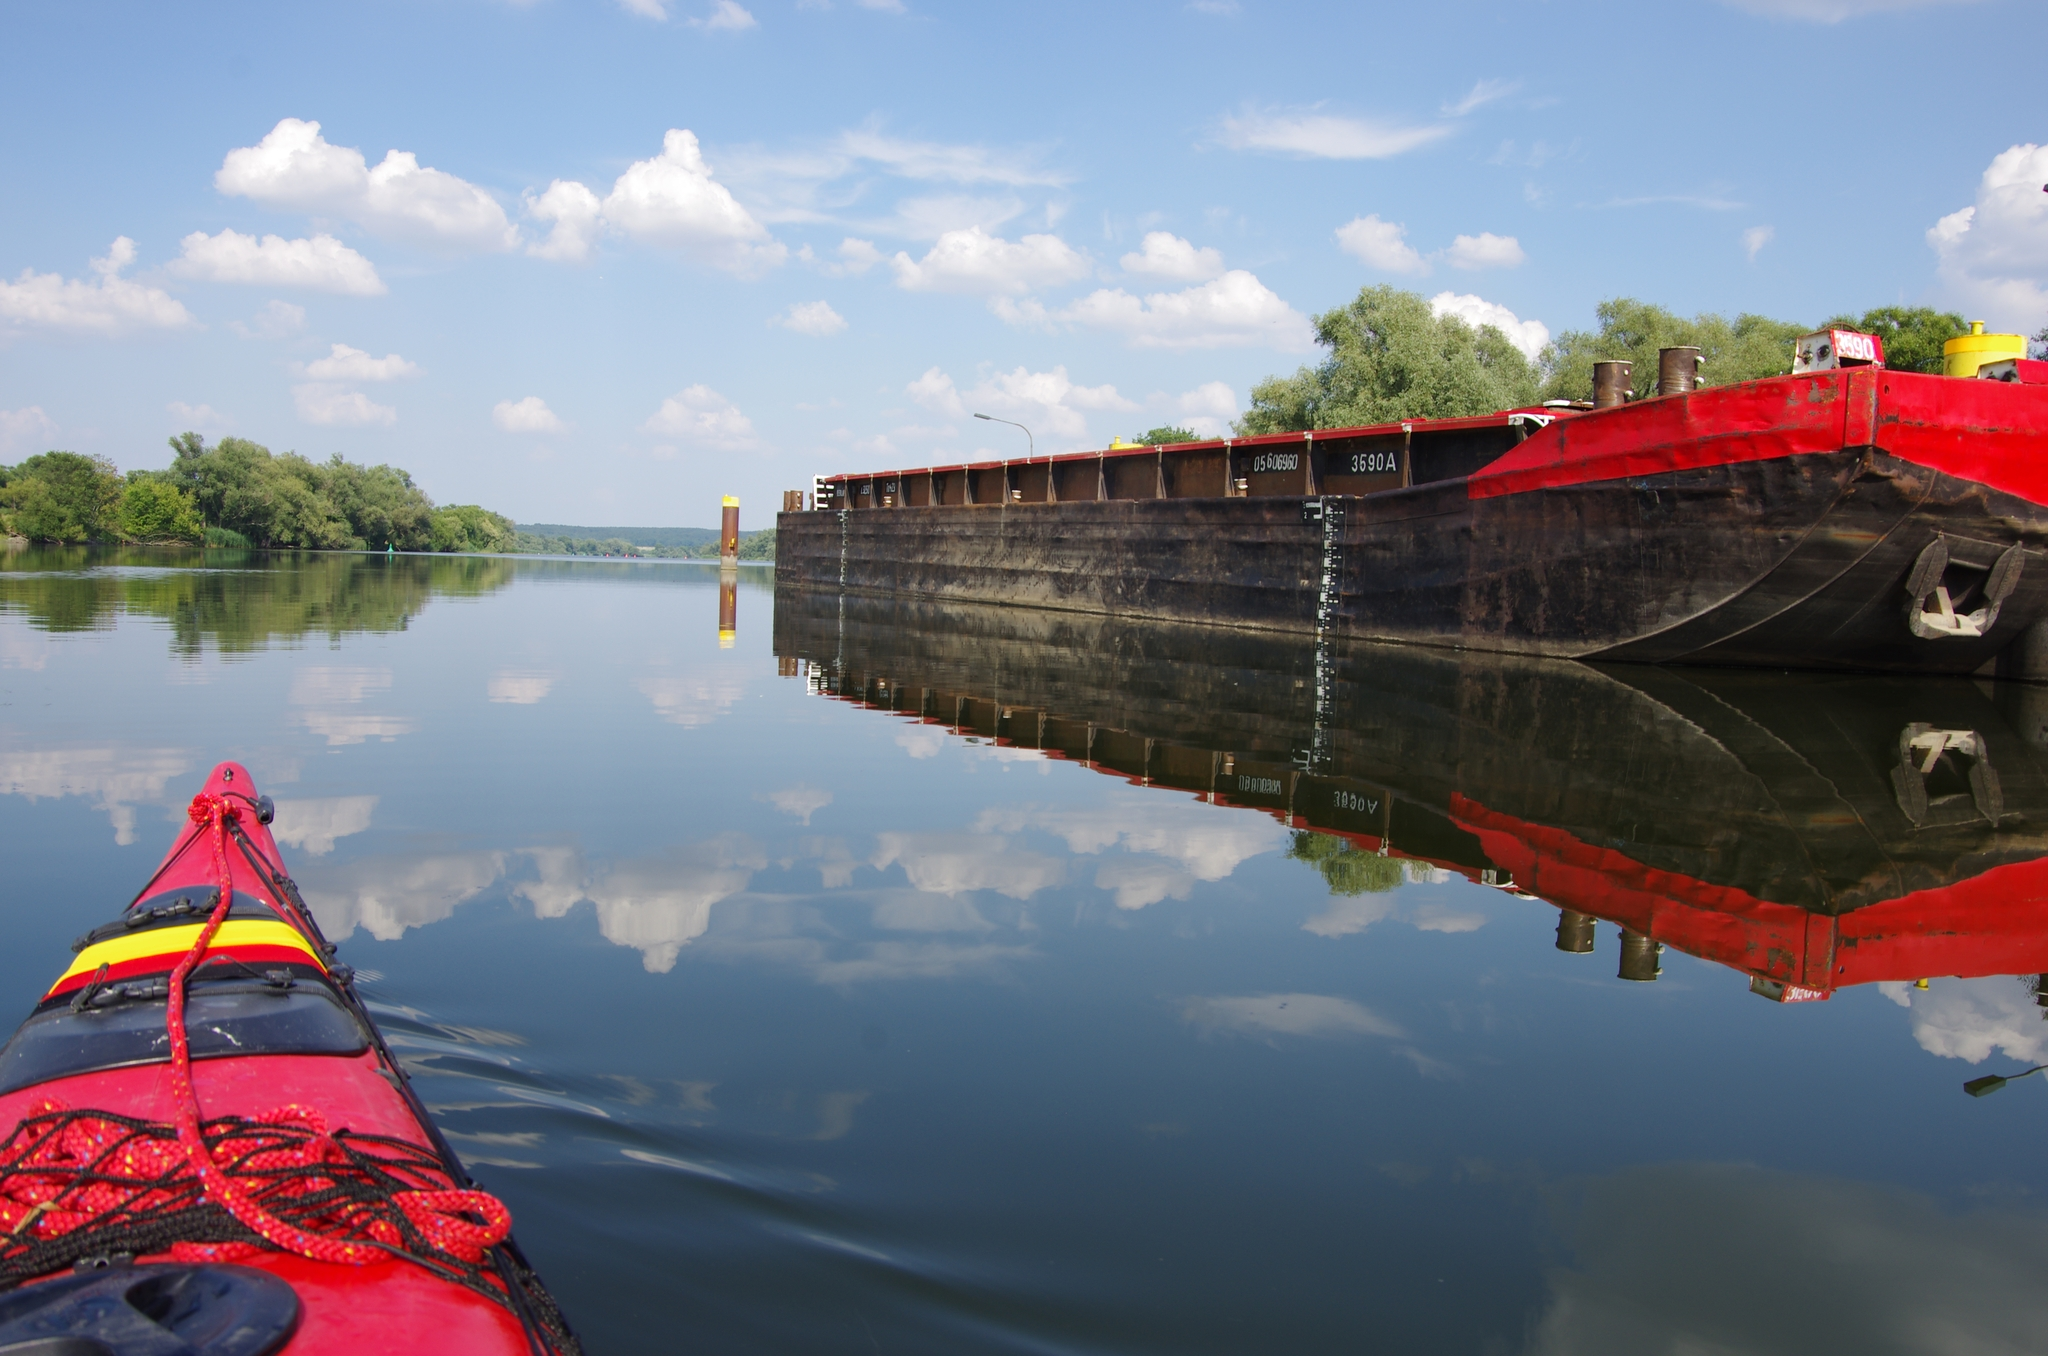 kayaking-odra-east-and-west_15-19-52_25-07-2016